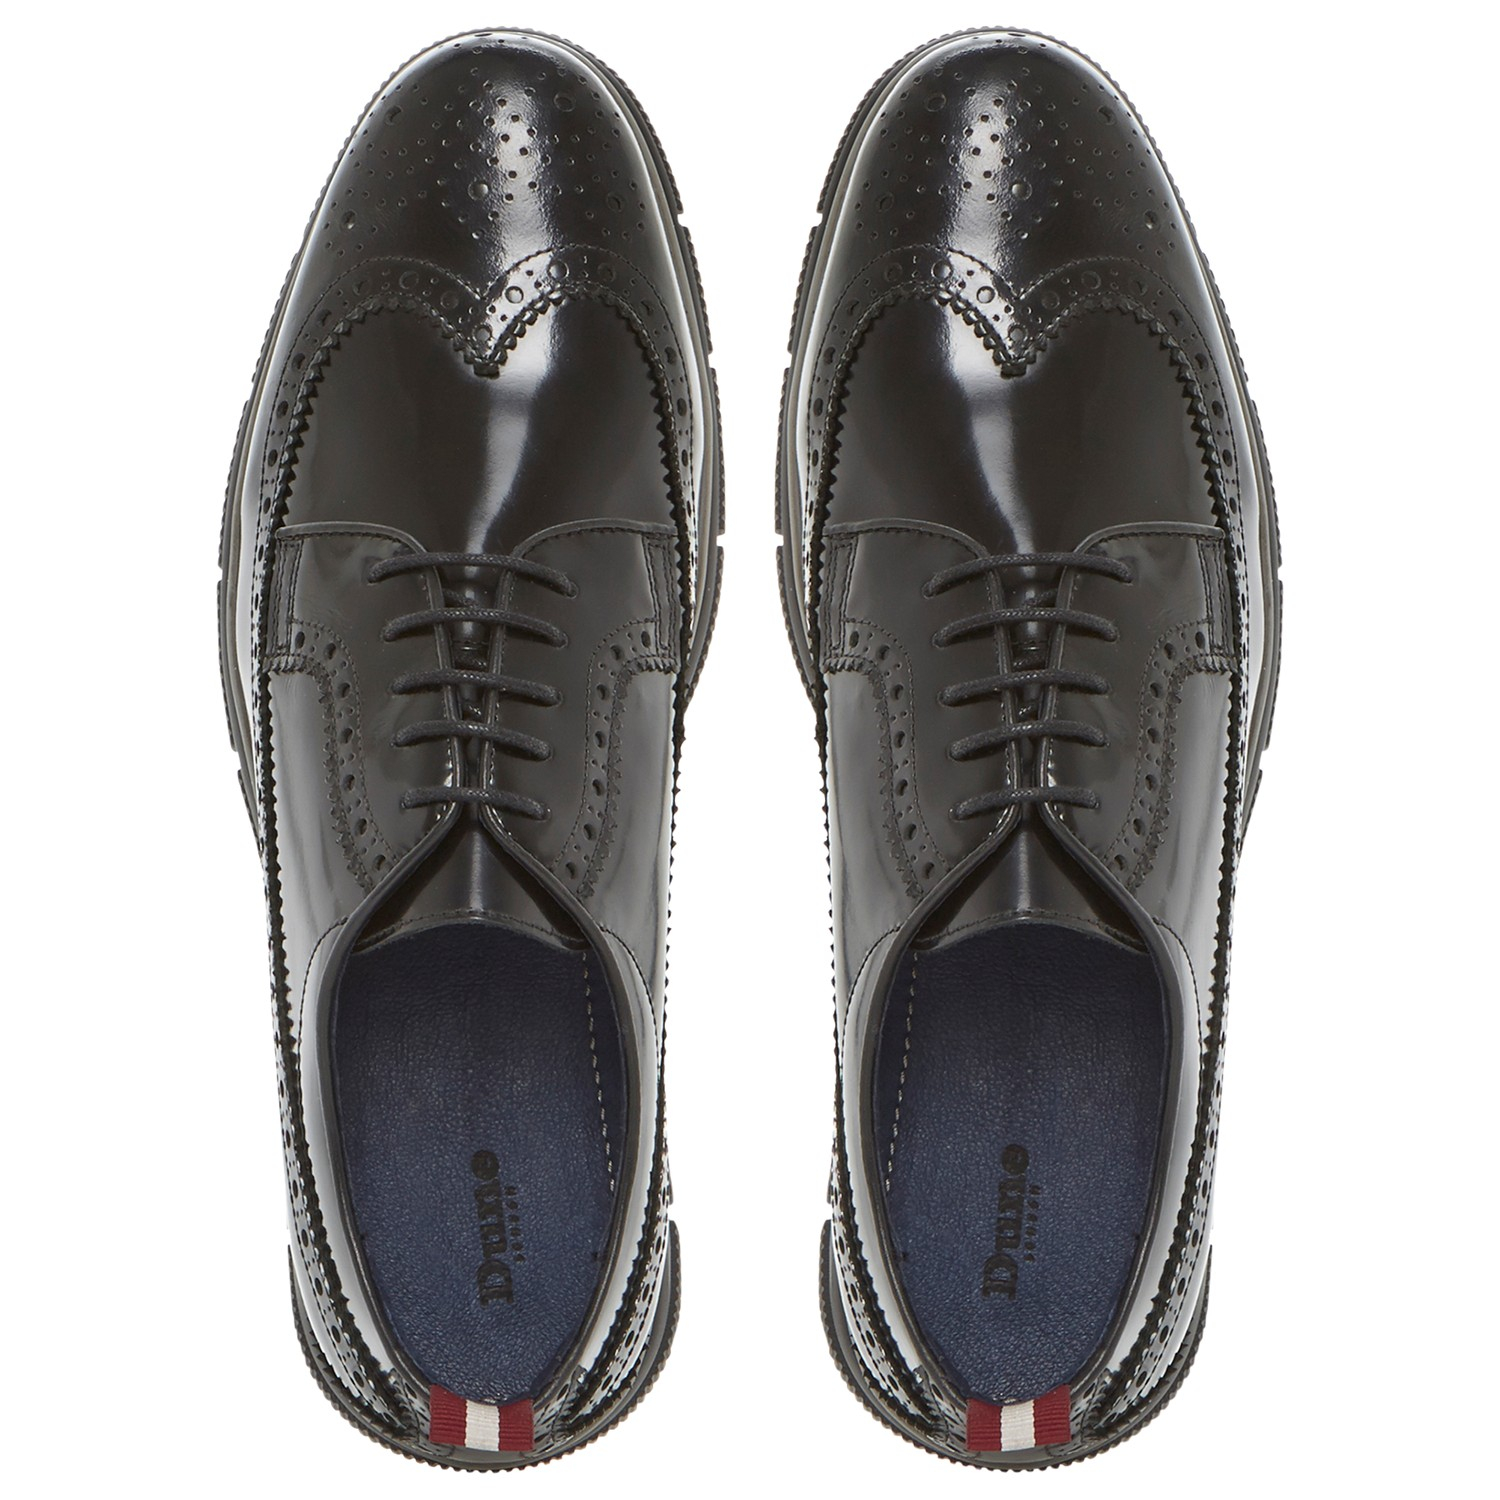 Dune Banger Lace Up Cleated Wedge Polido Brogues in Black for Men